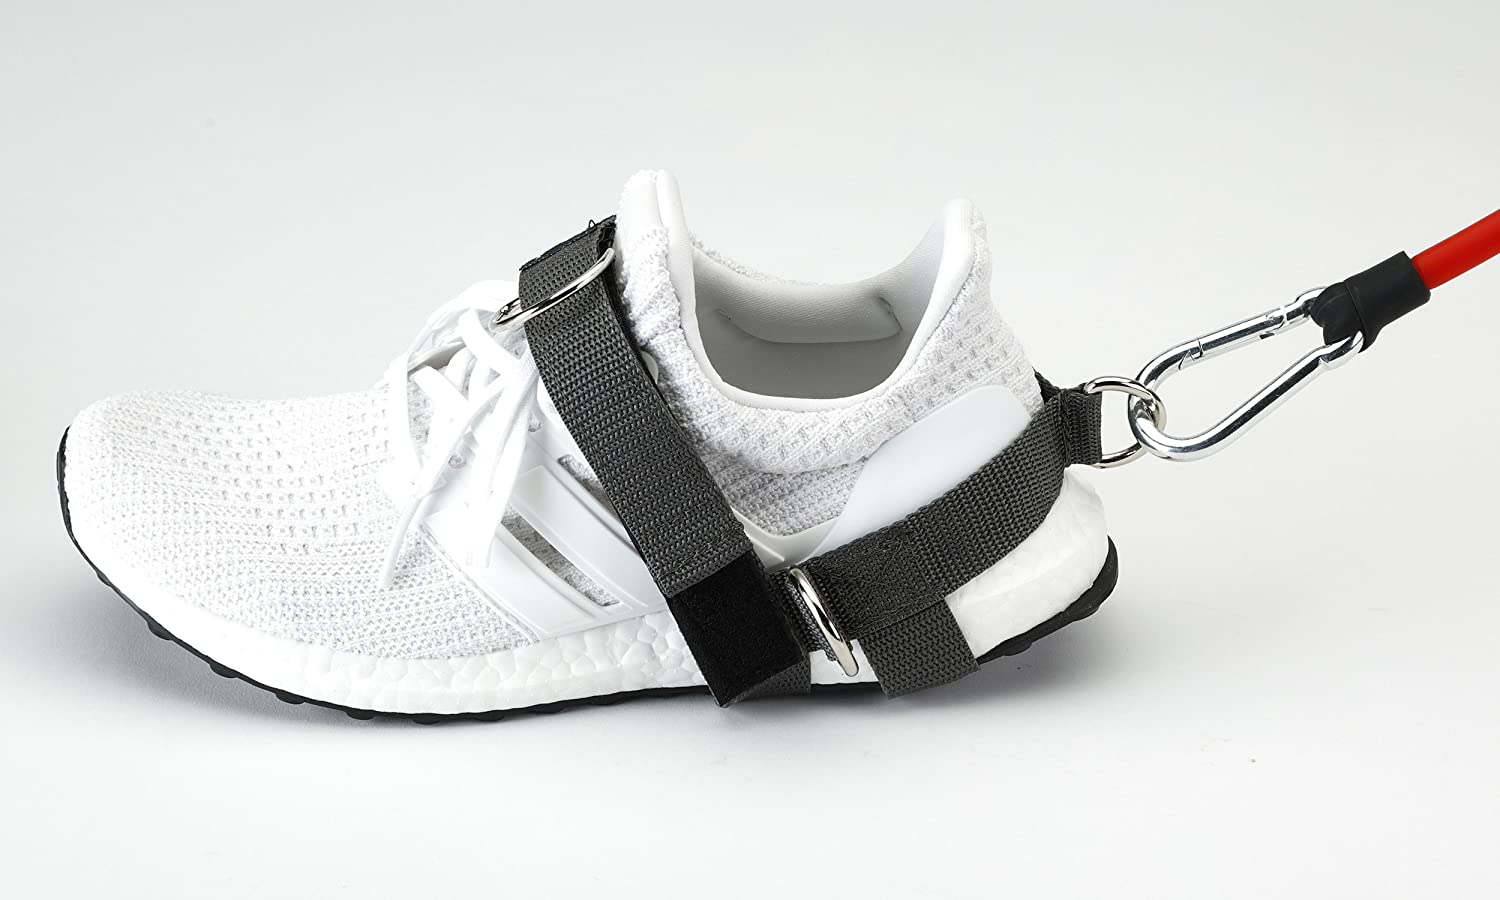 STRAPSHAPER Ankle strap for workouts 5 connection points V.I.P 4 PRO glute kickback exercises